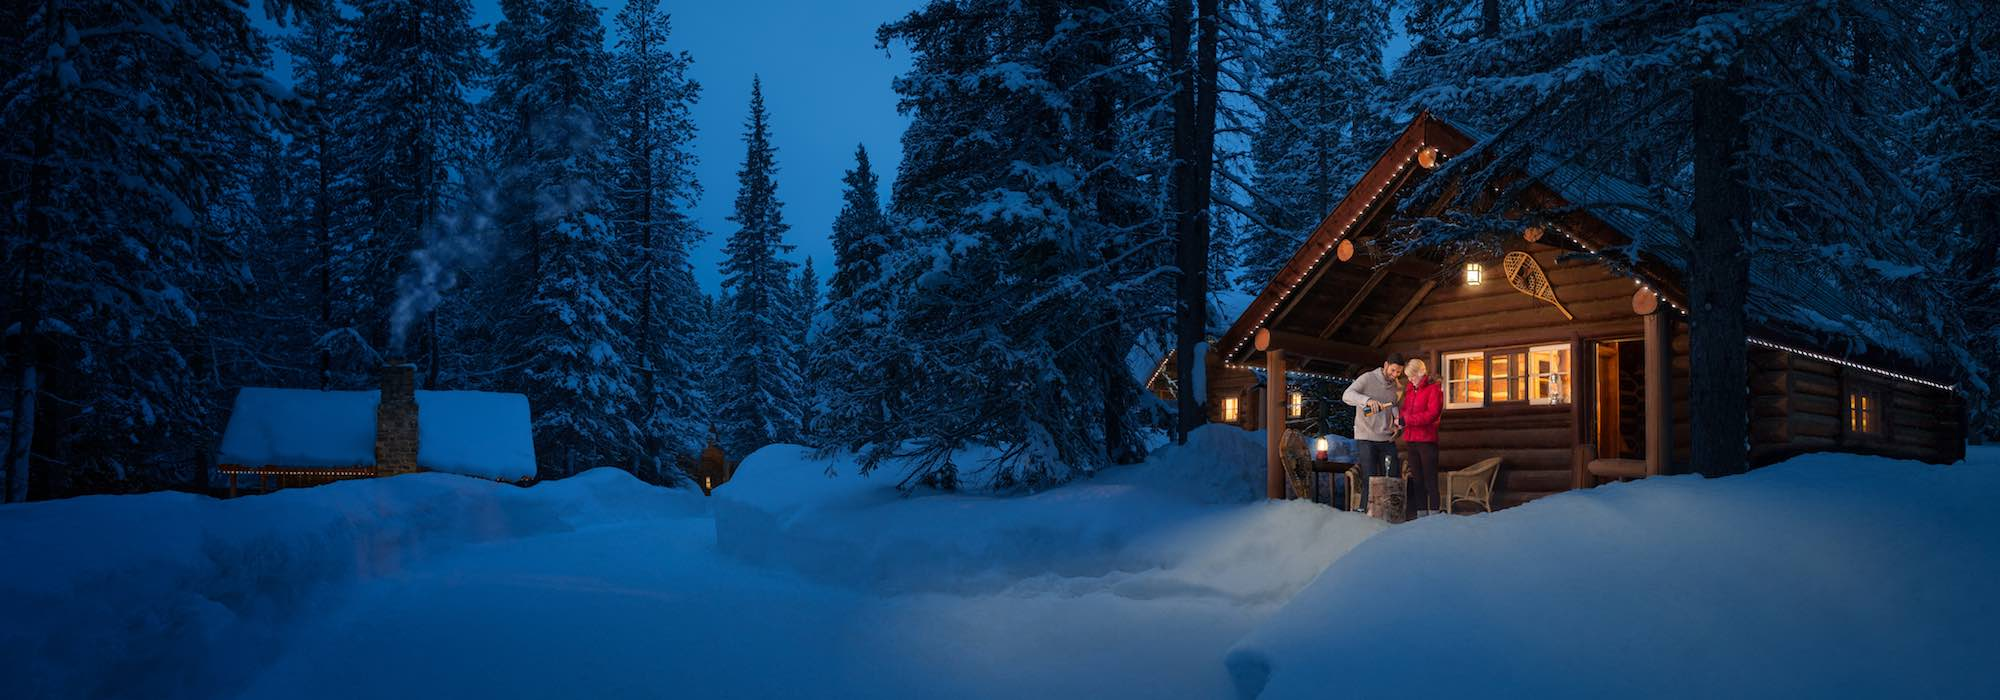 Winter exterior shot of Storm Mountain Lodge, Banff National Park.